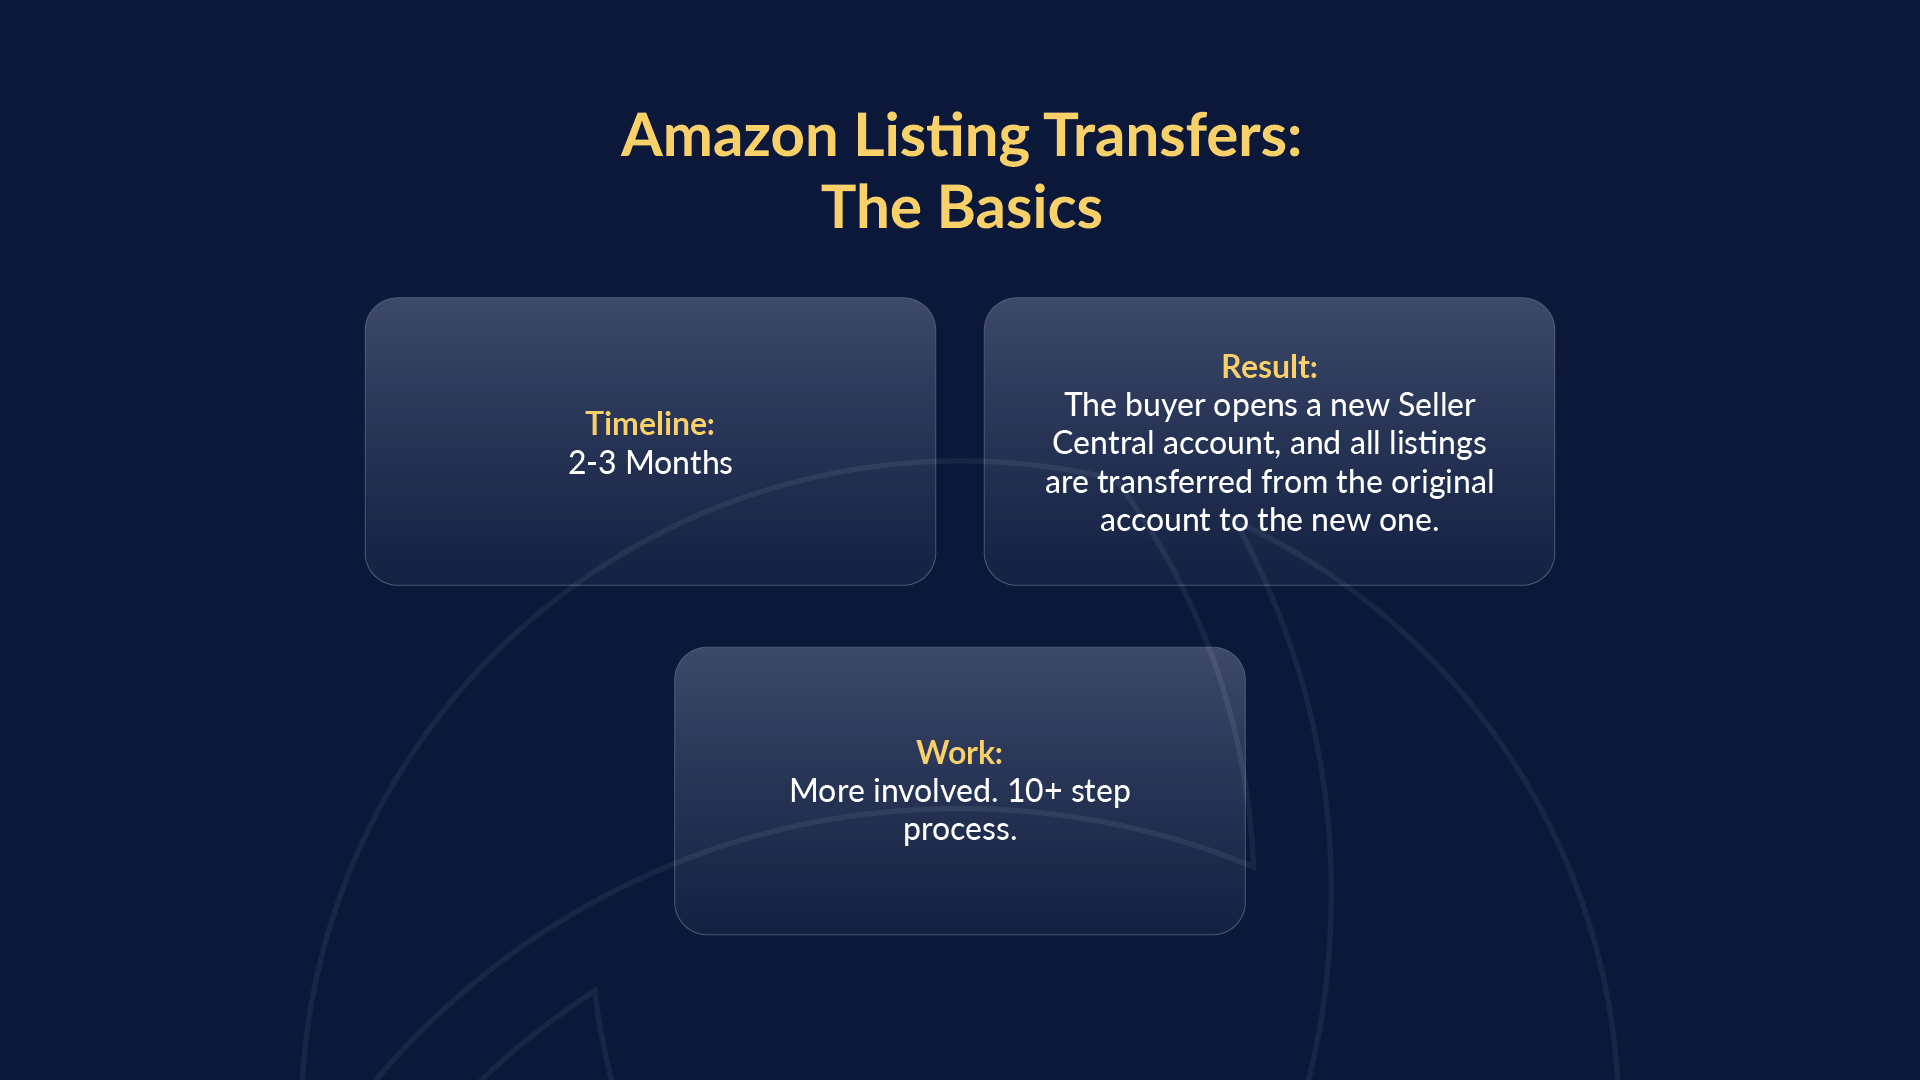 Breakdown of the timeline for Listing Transfers.